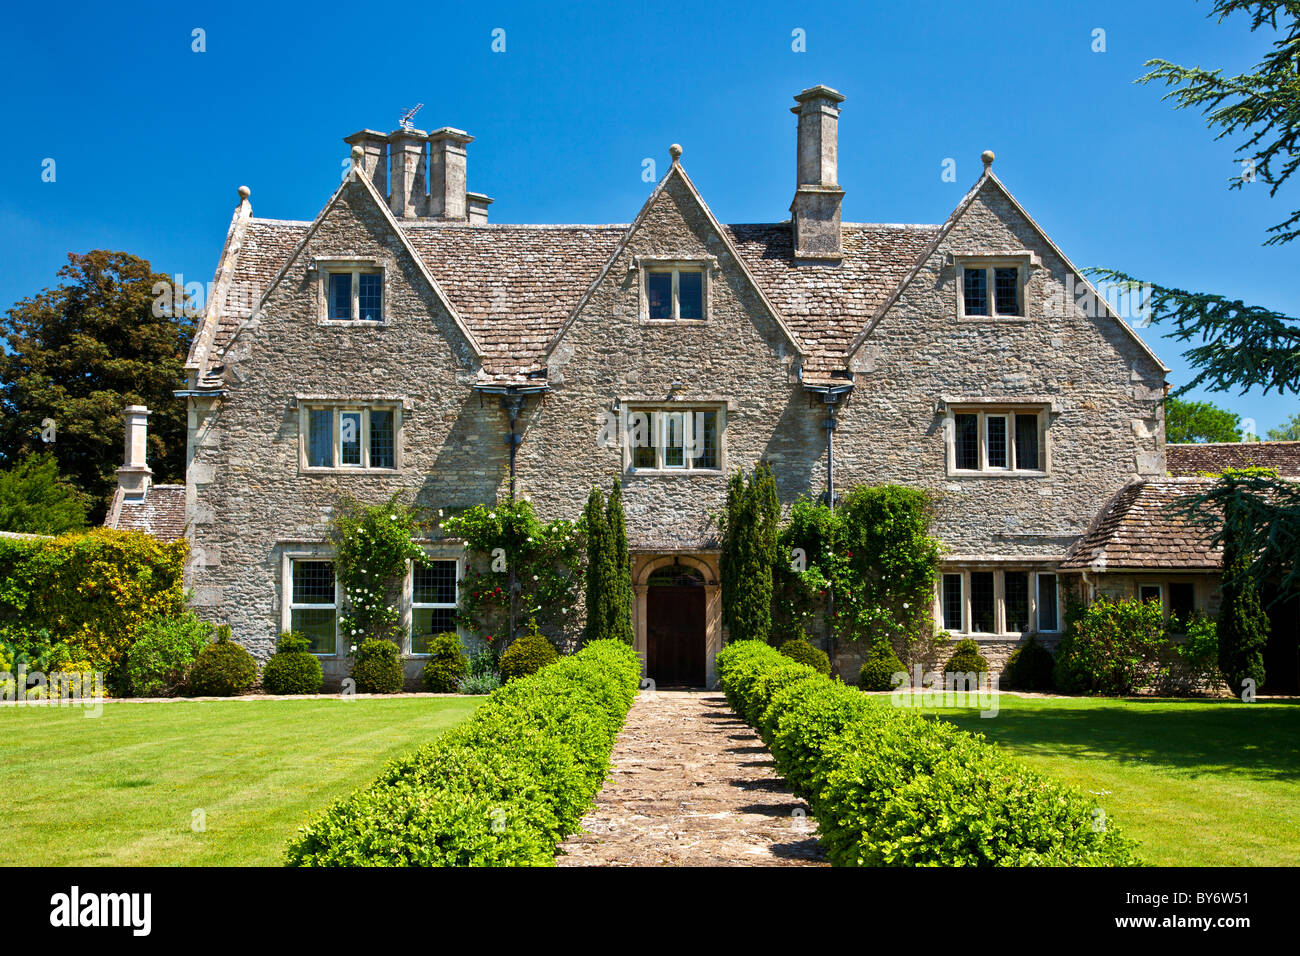 A grand english country manor house in summer stock photo for English country manor house plans